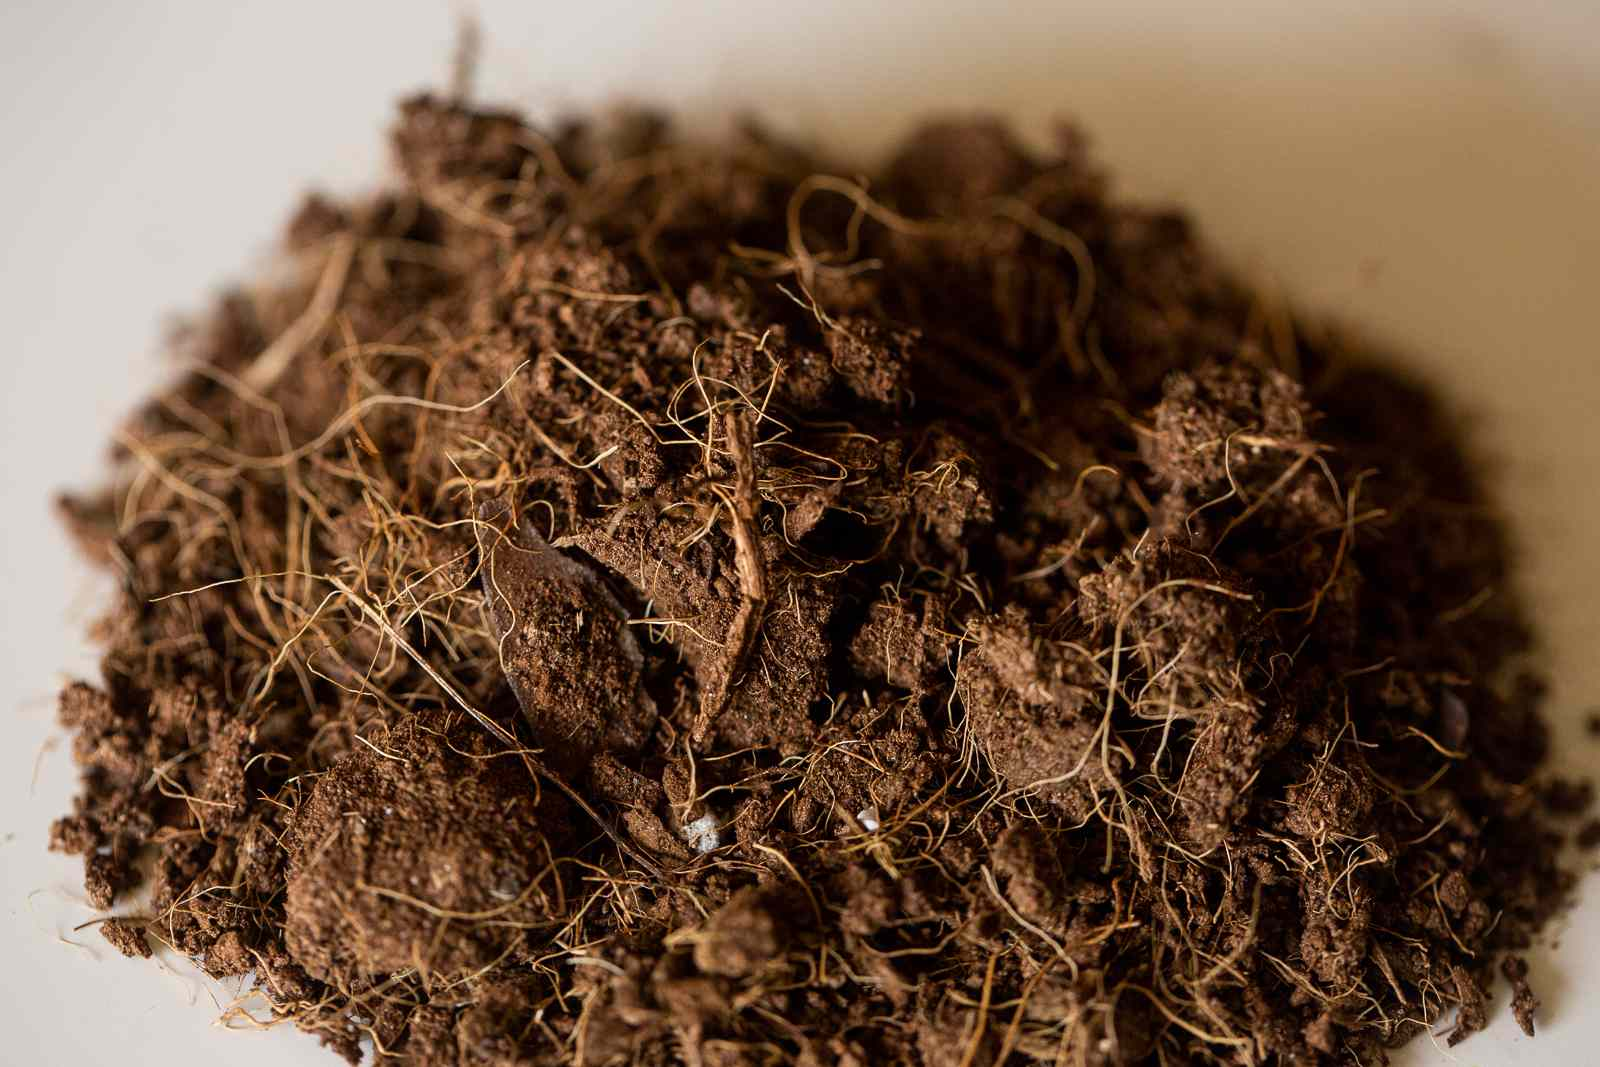 Pile coconut coir fibers for orchid growing material closeup